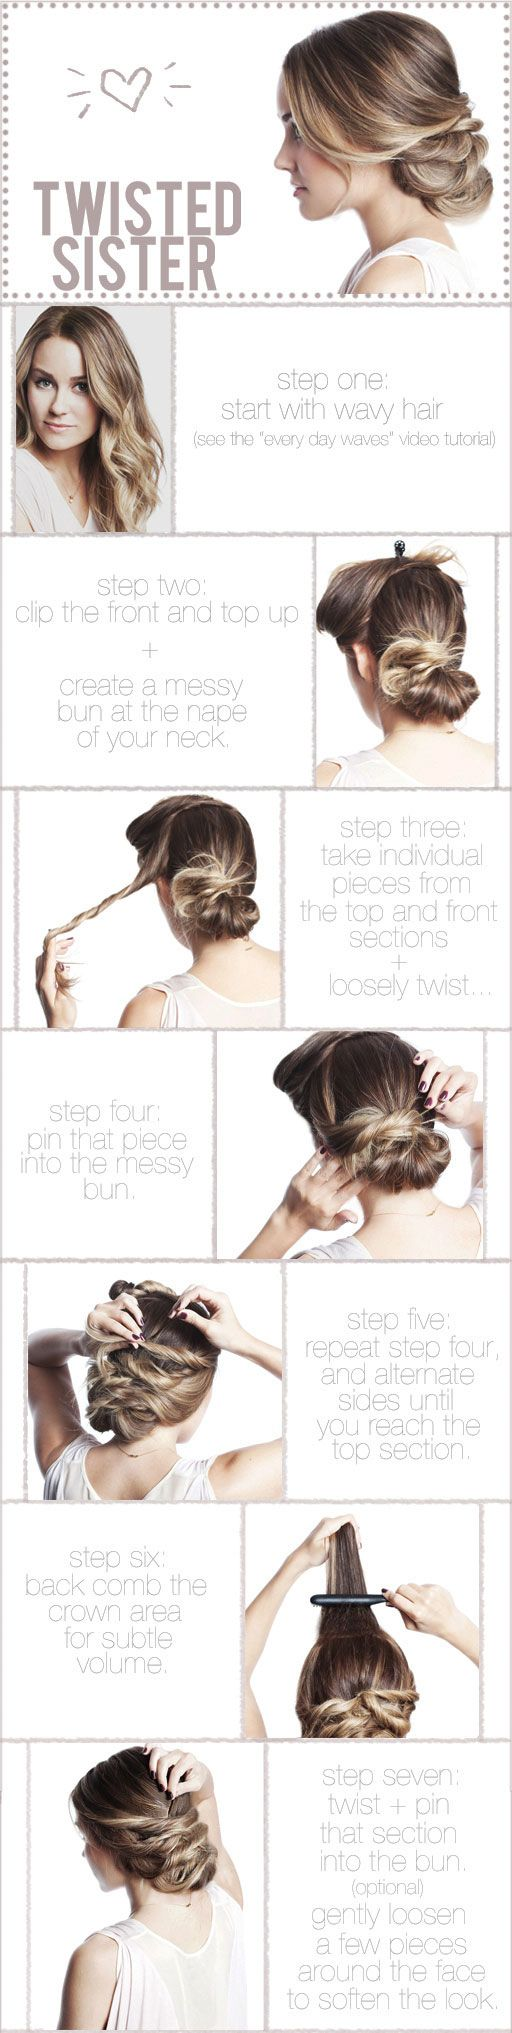 three fav pre wedding DIY bridal hairstyles how to tutorials for brides 3